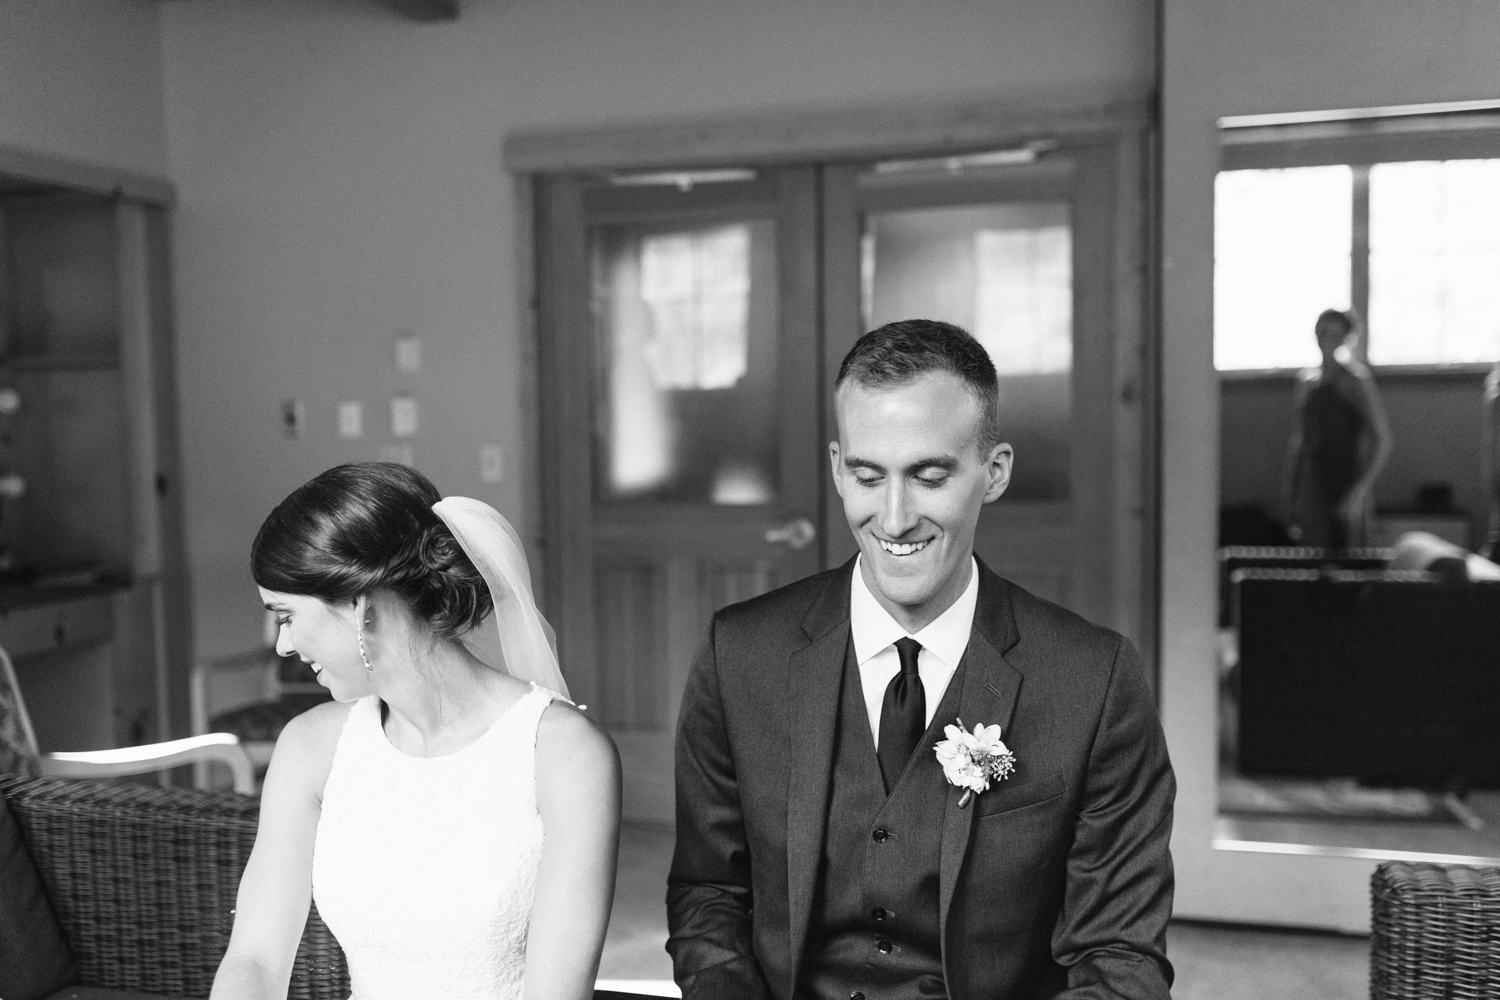 Grey and White Wedding in the Mountains of Leavenworth, Washington | Sleeping Lady | Classic and Timeless Wedding | VSCO | Signing of Certificate Black and White.jpg-3134.jpg